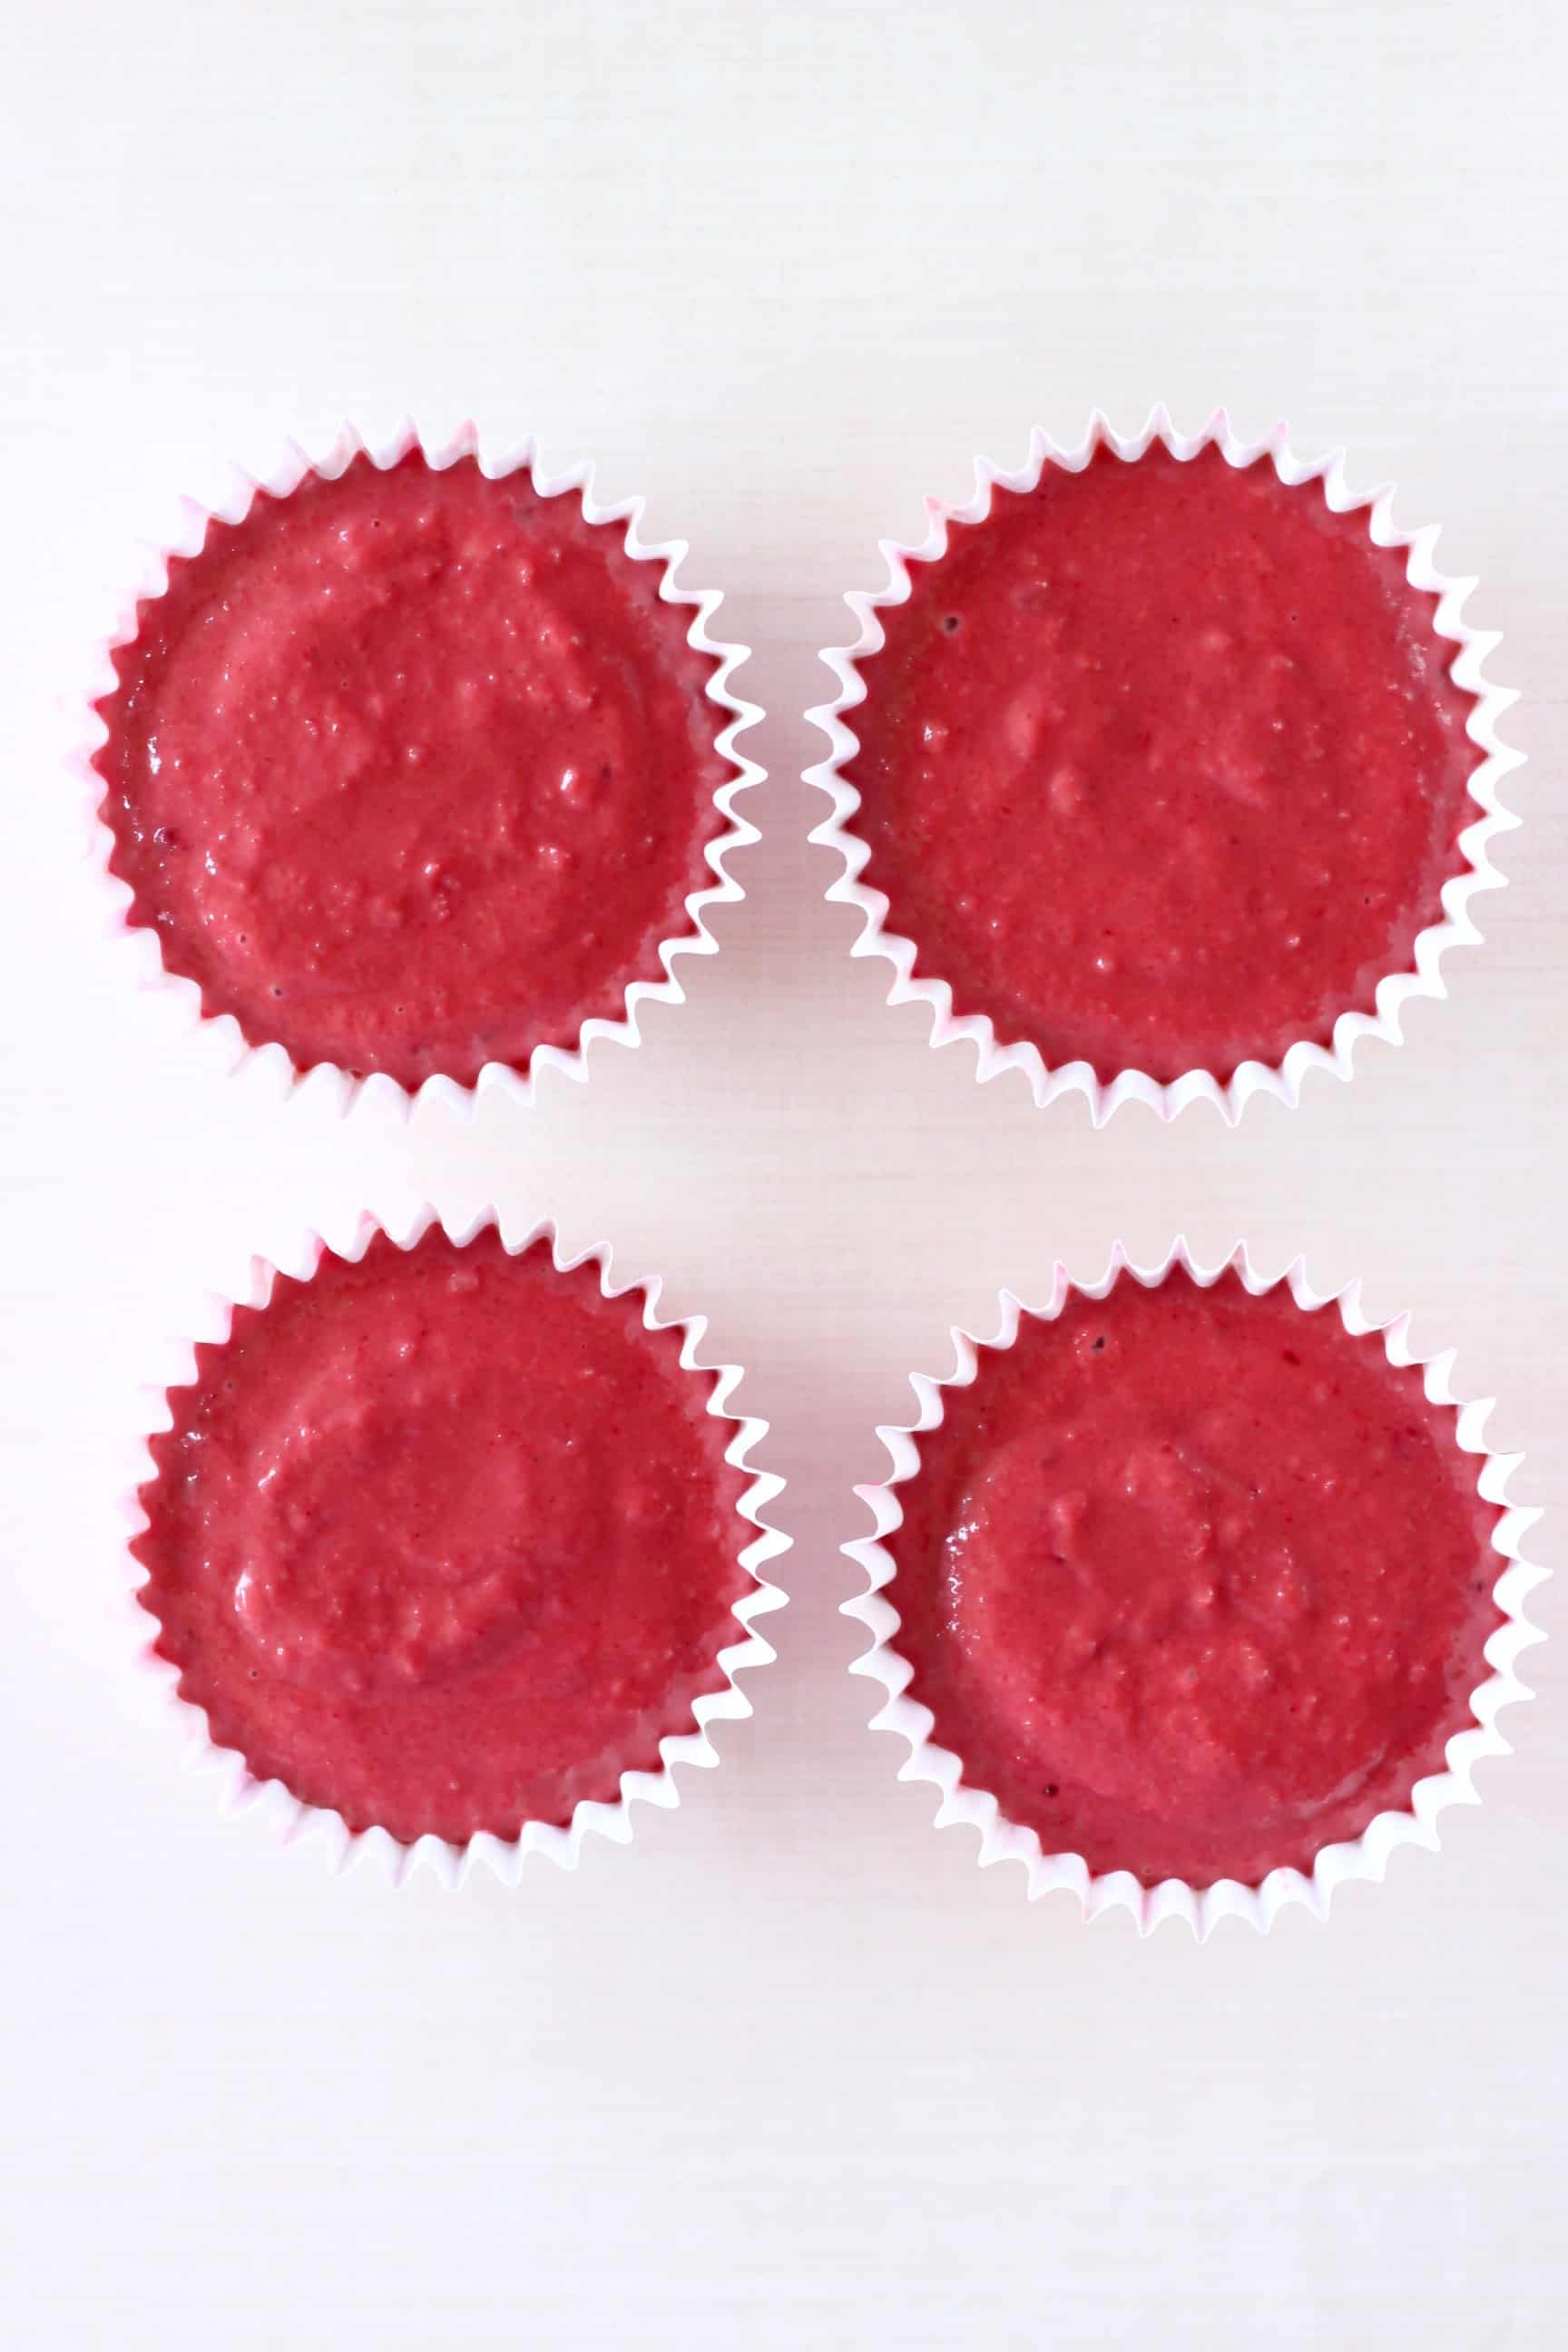 Four cupcake cases filled with raw gluten-free vegan red velvet cupcakes batter